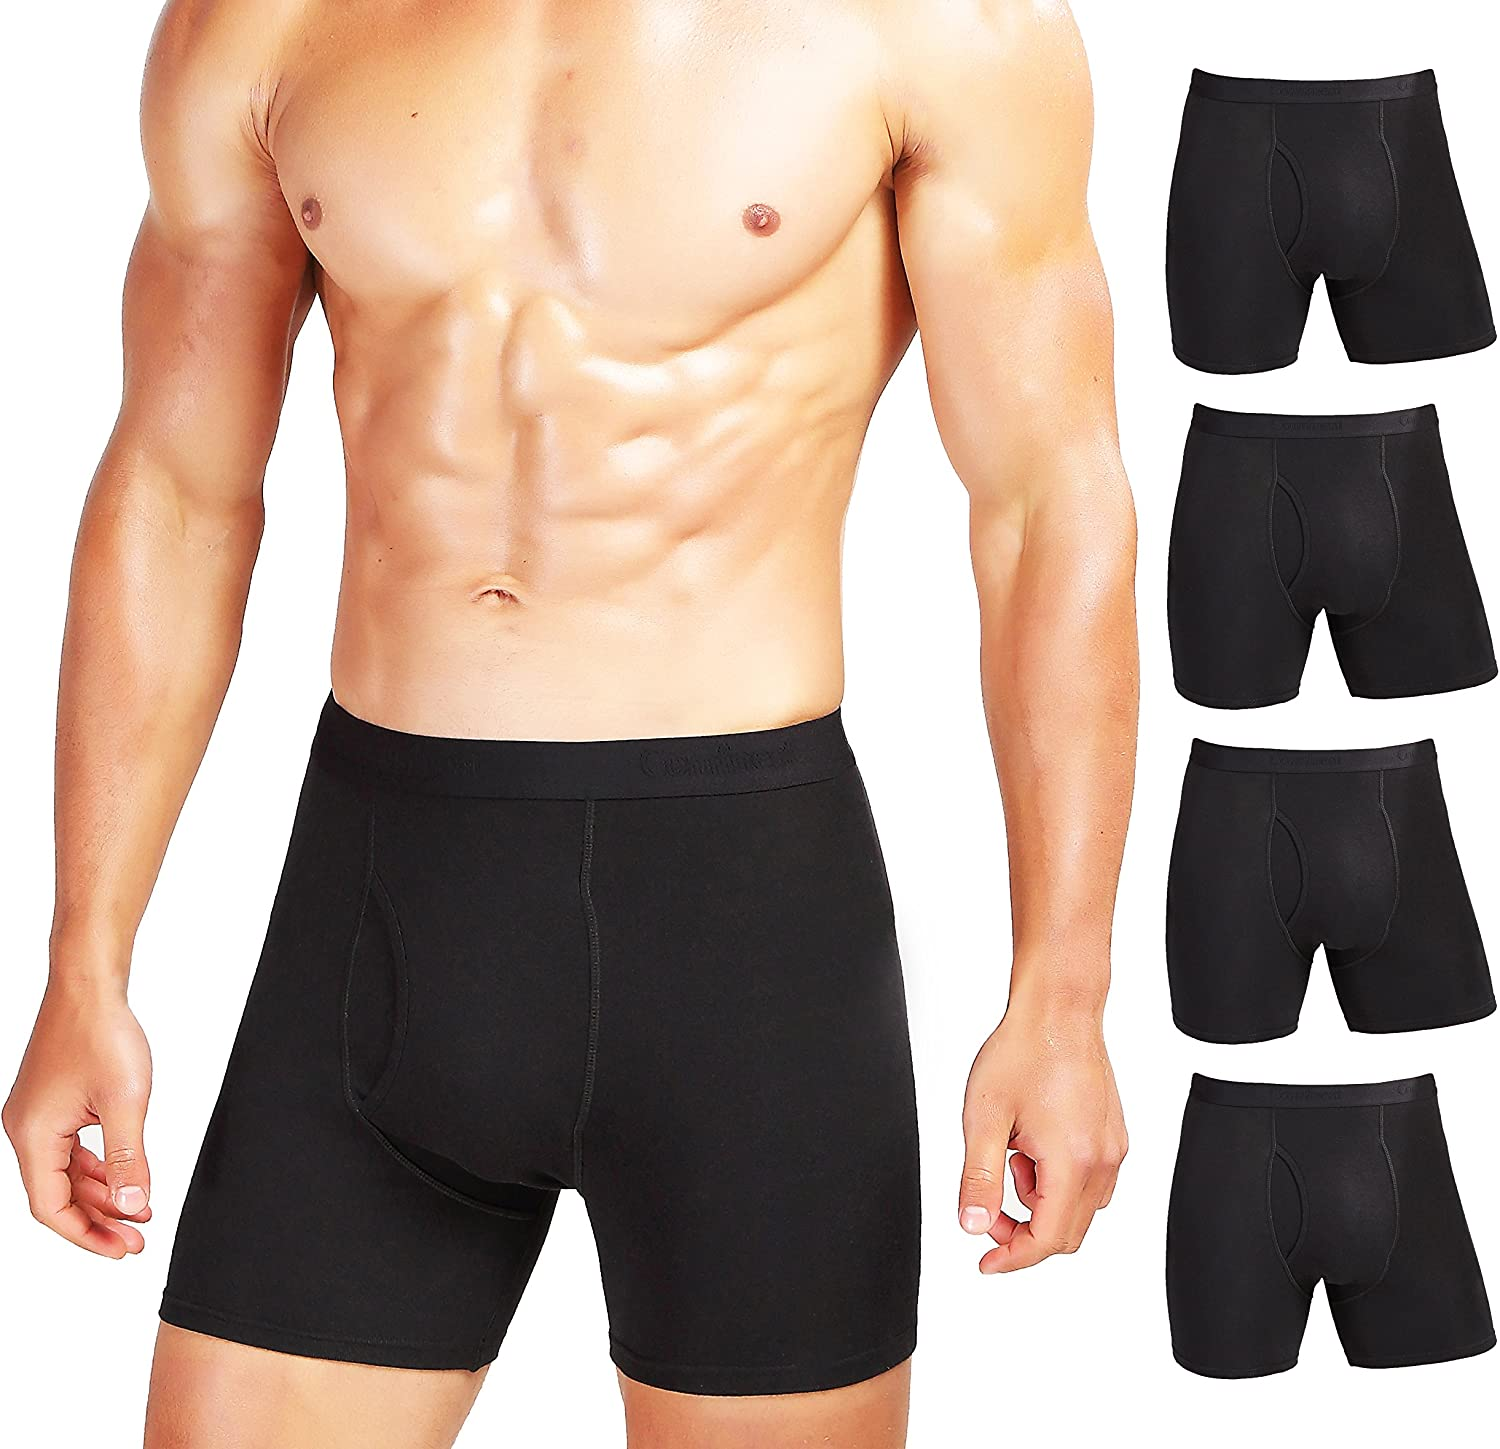 Comfneat Mens 5 or 7-Pack Boxer Briefs Cotton Spandex Tagless Comfy Underwear Black 5-Pack, S